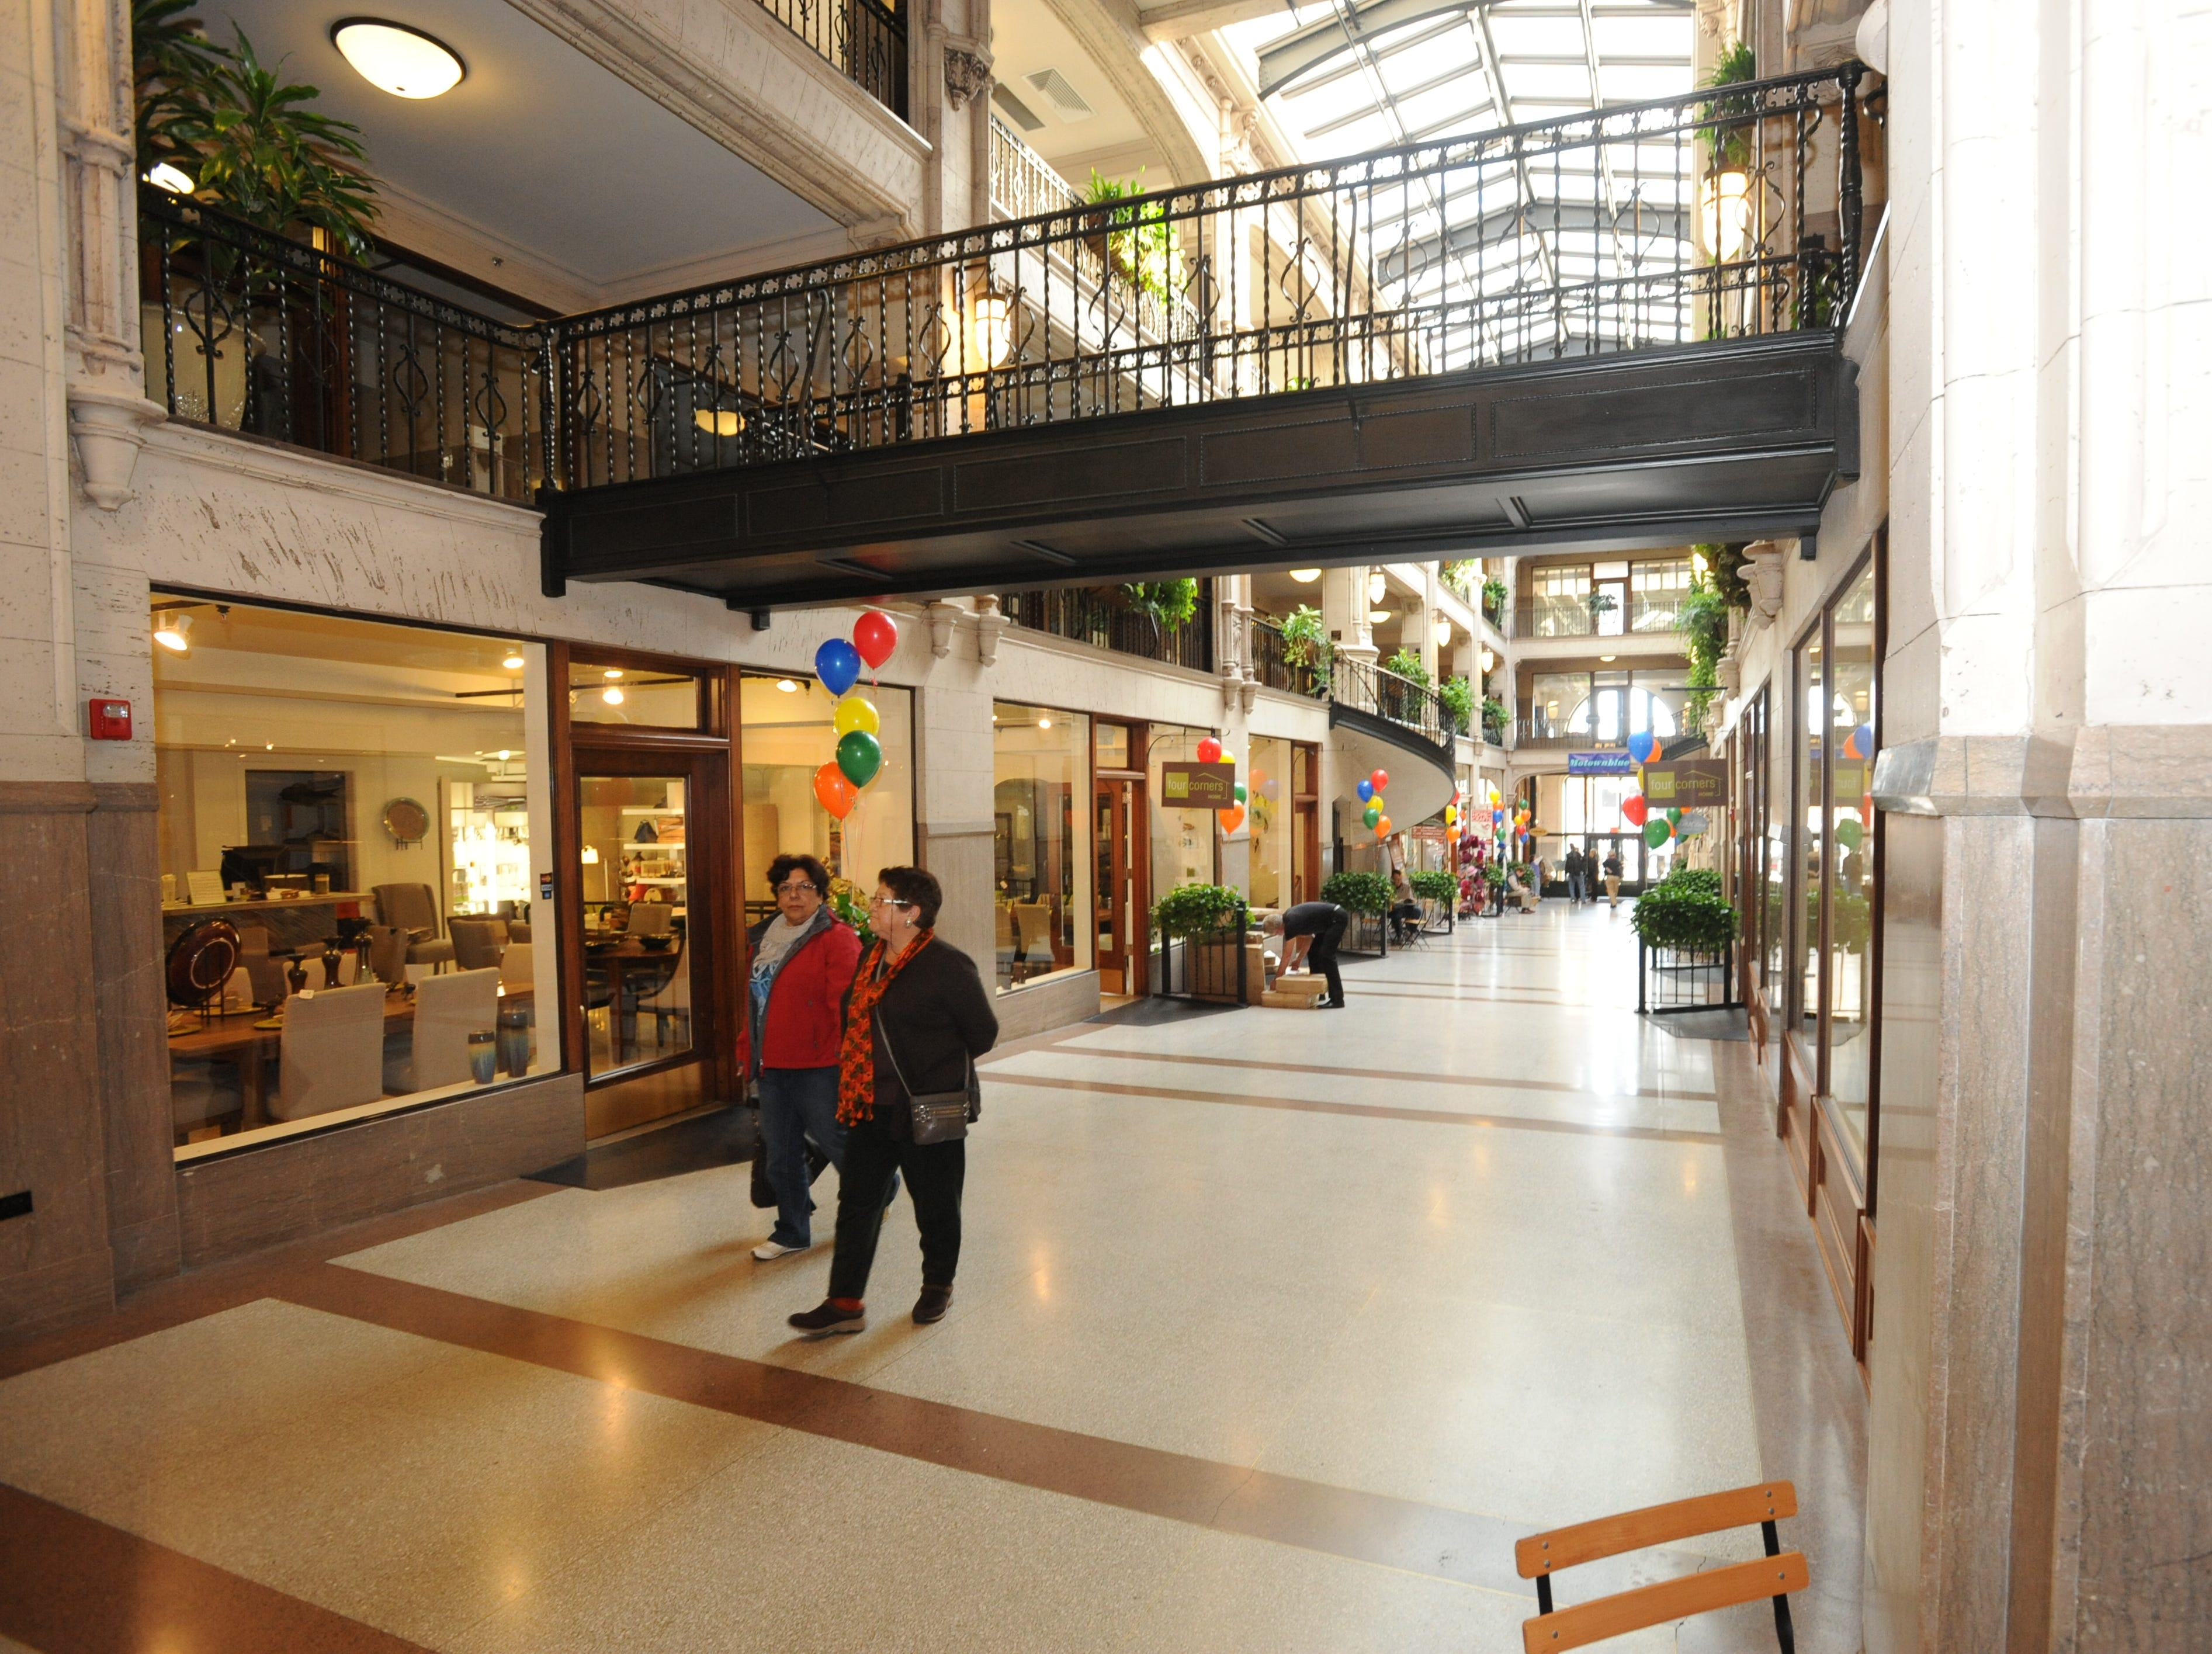 The Grove Arcade is home to not only shops but several apartments on upper floors.